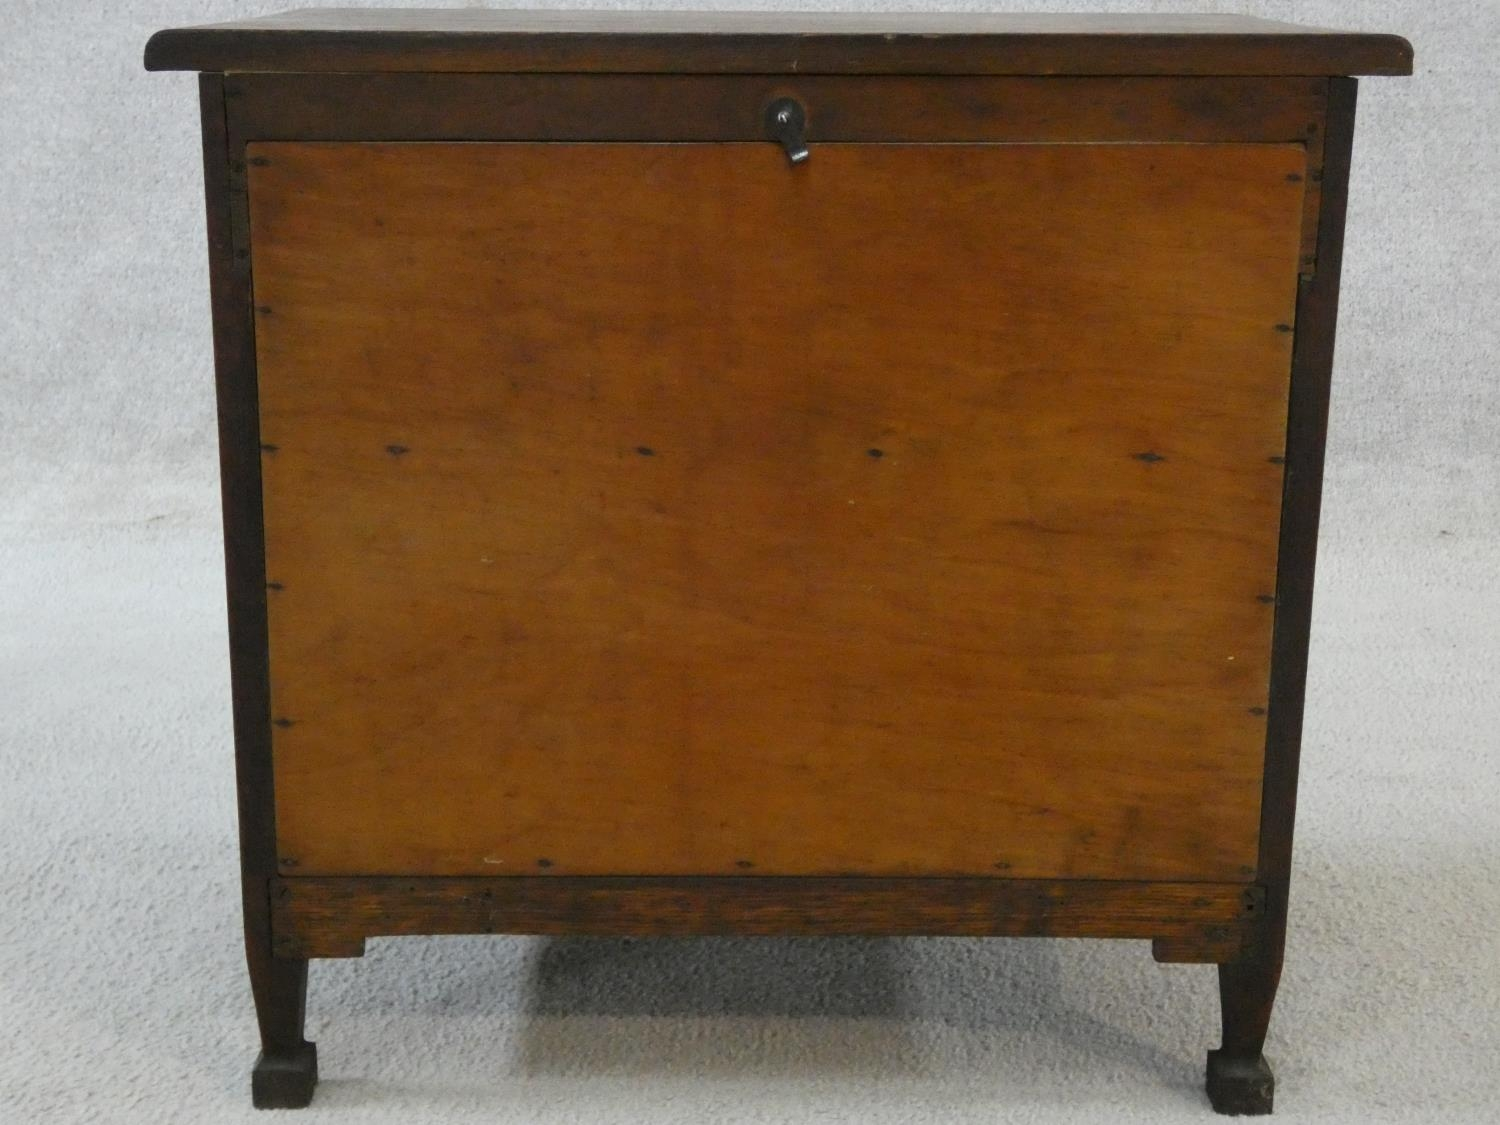 An early 20th century country oak style side cabinet with carved panel doors on squat square - Image 12 of 14